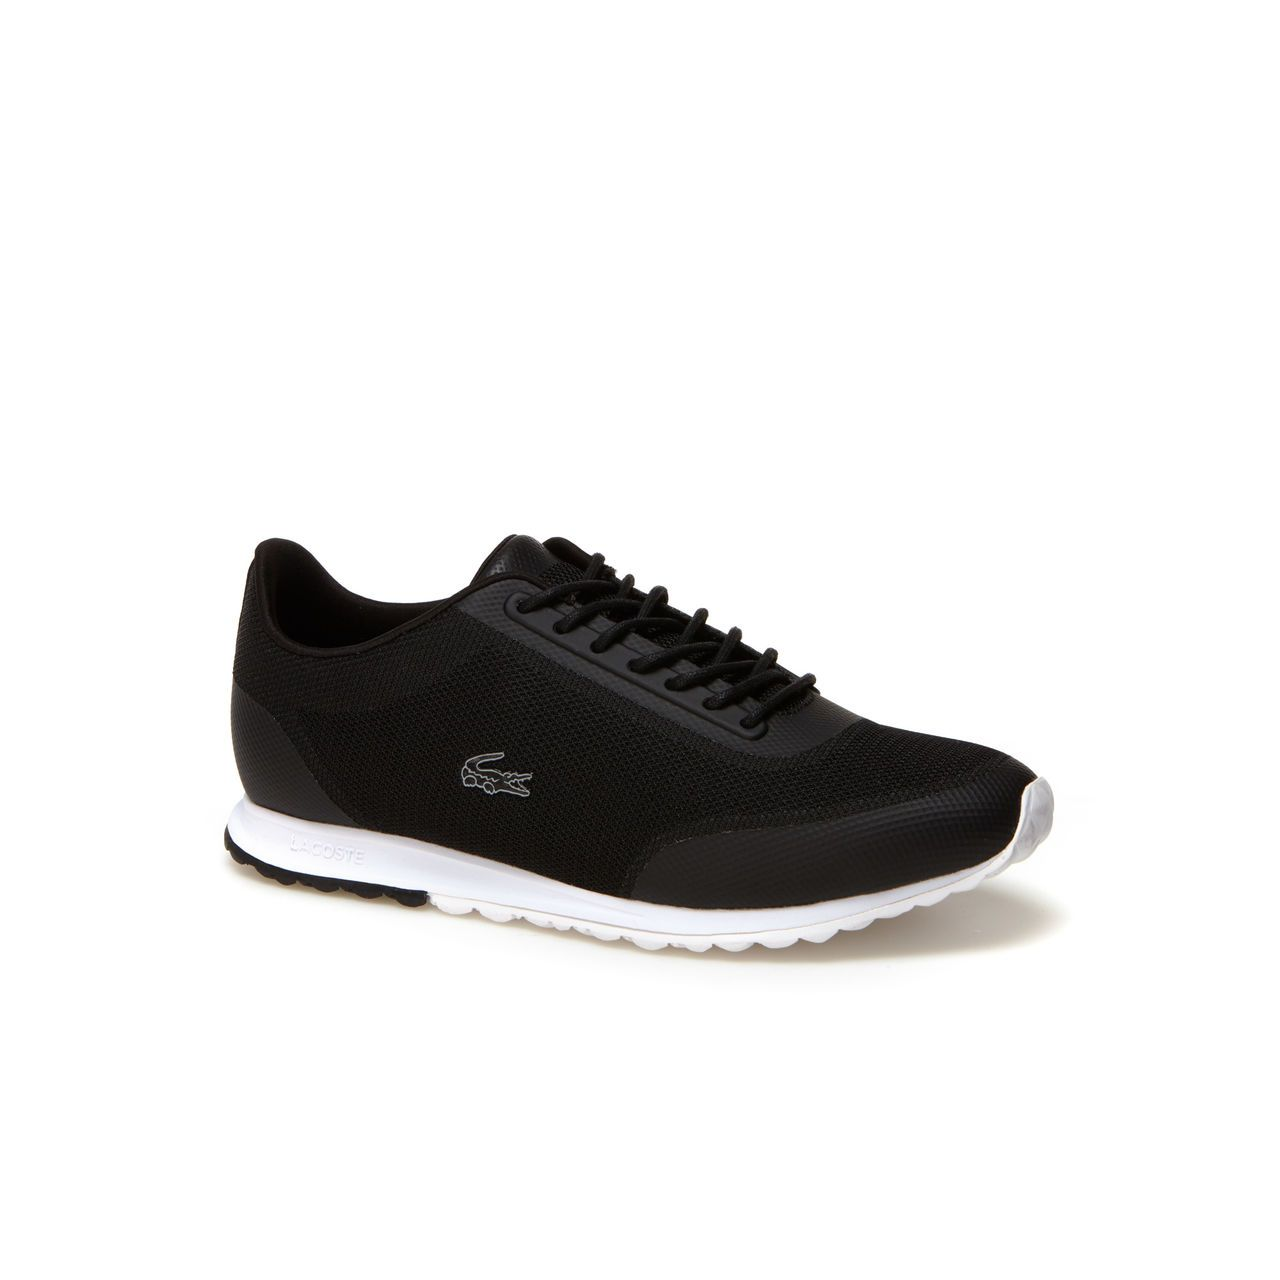 4f0c950a5 Women s Helaine Runner trainers in canvas